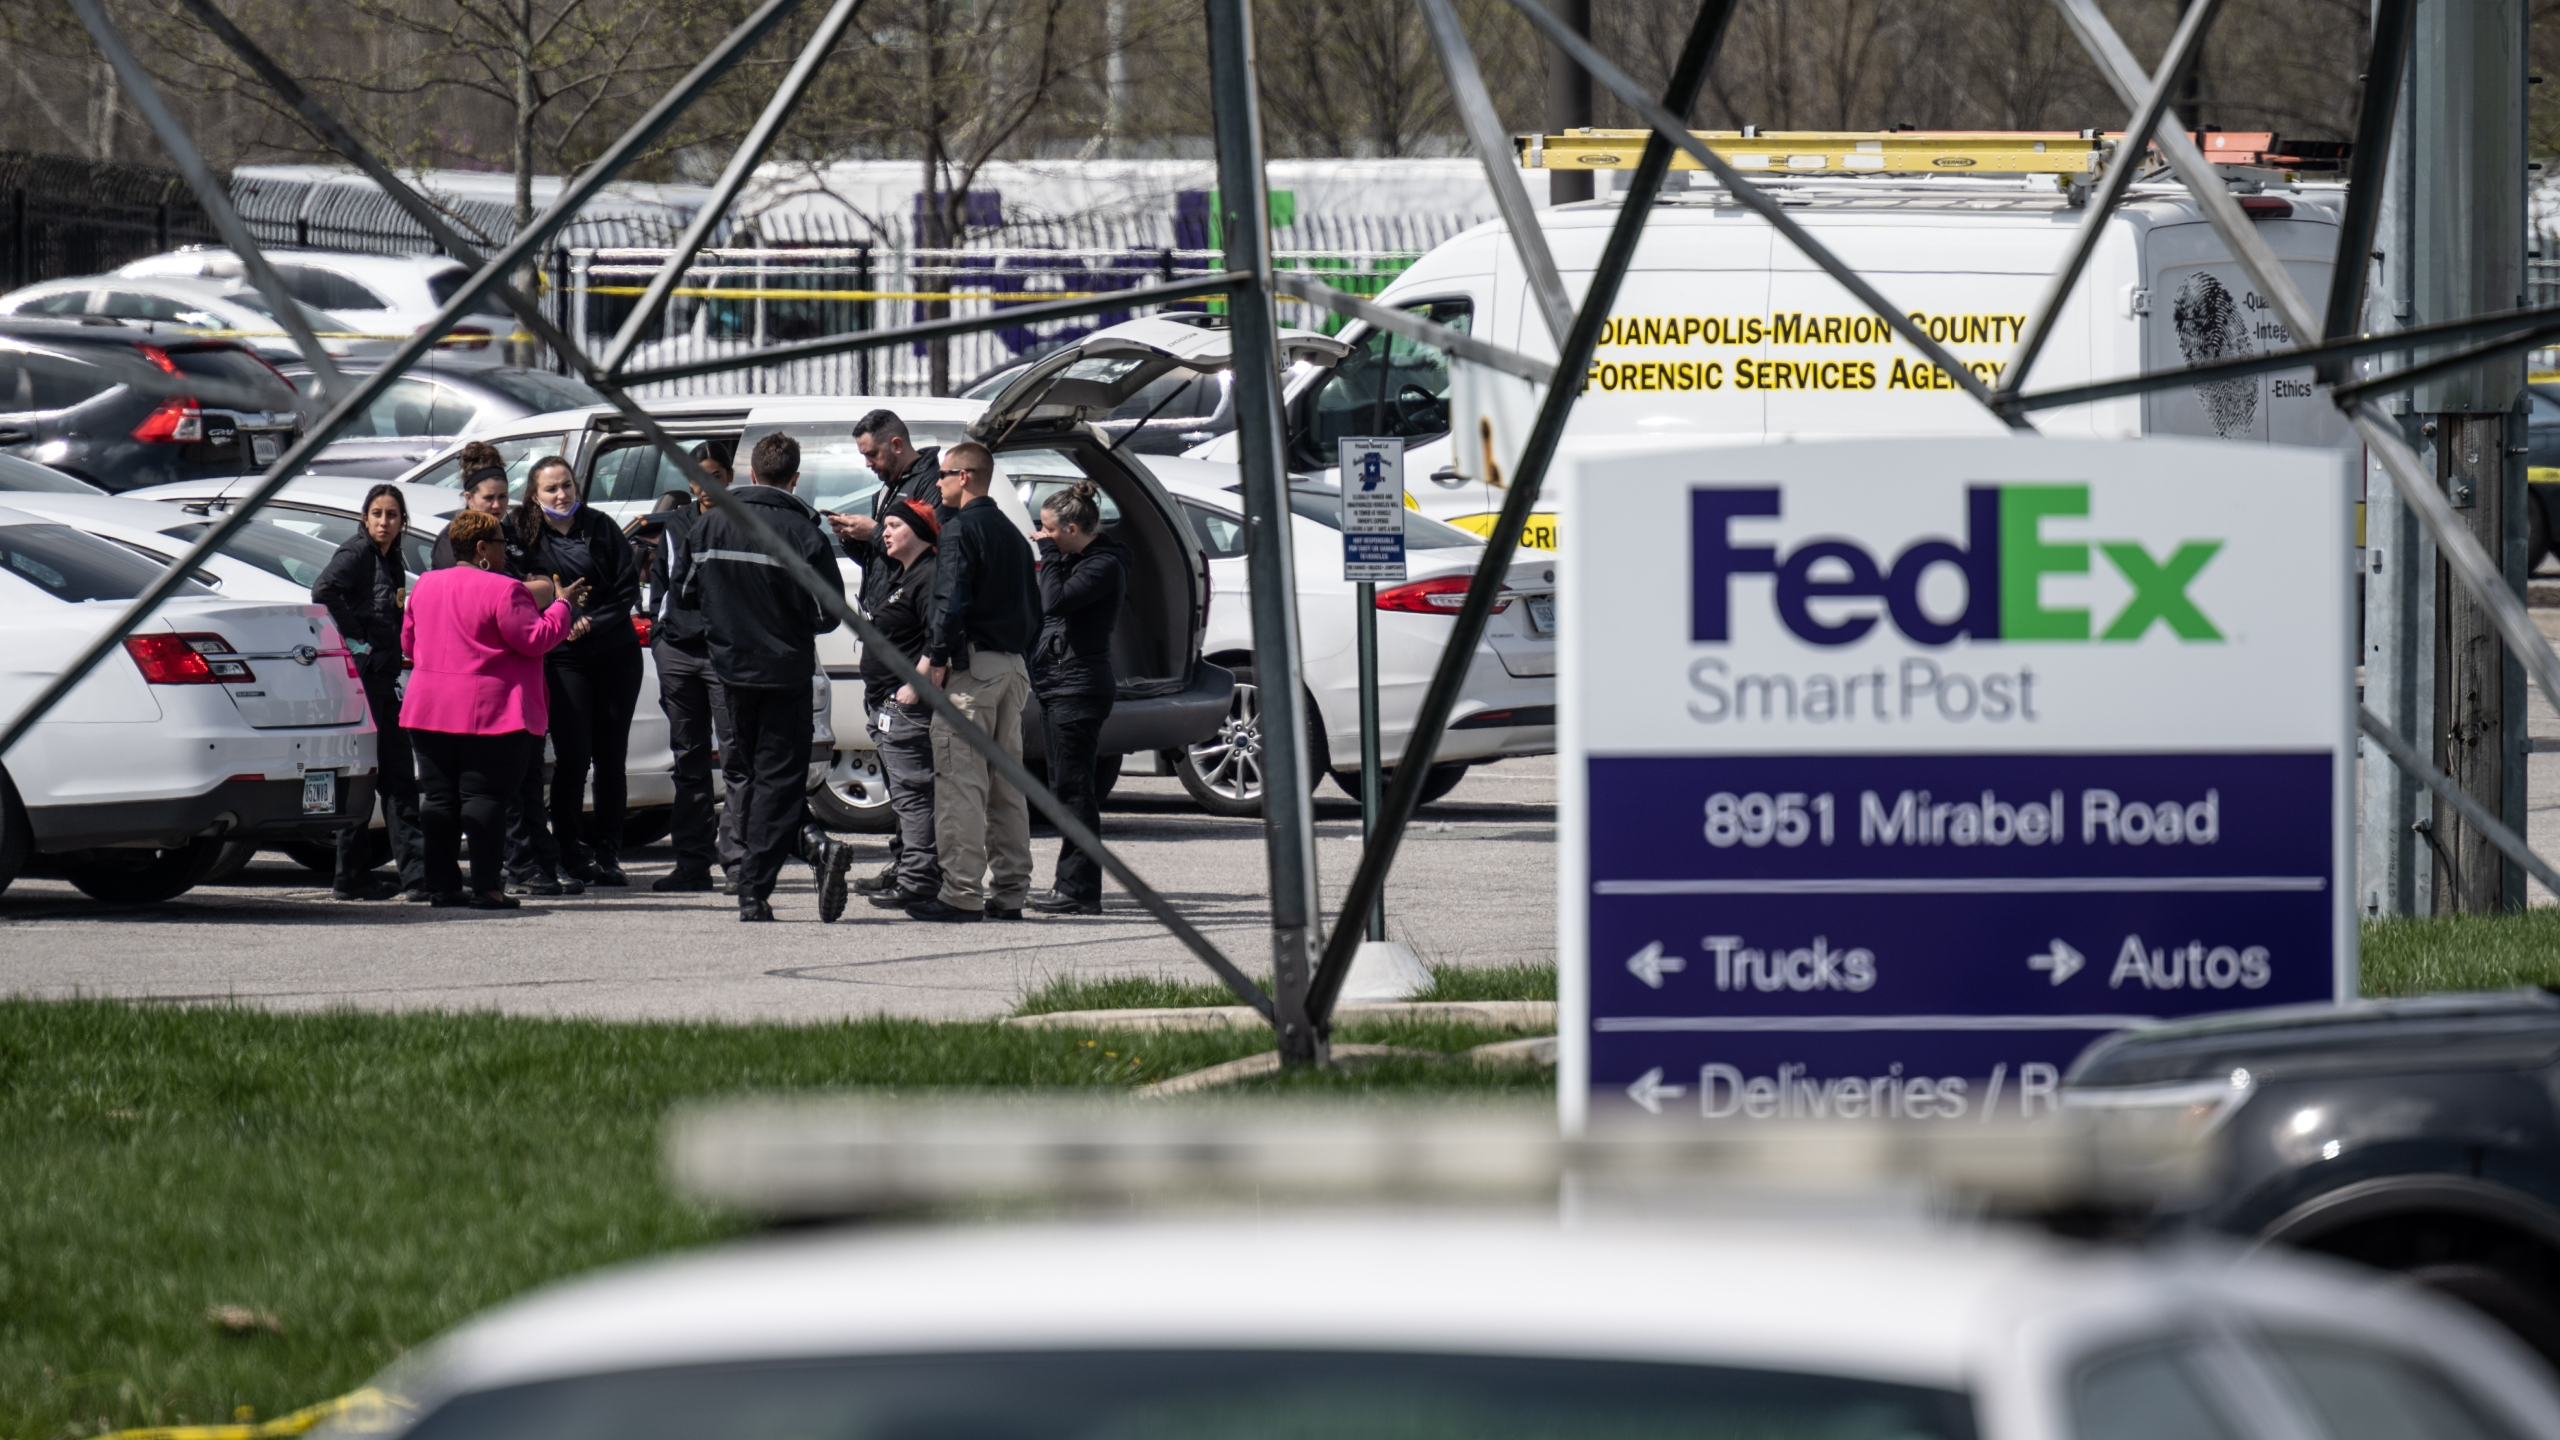 FedEx worker says she raised security concerns before shooting